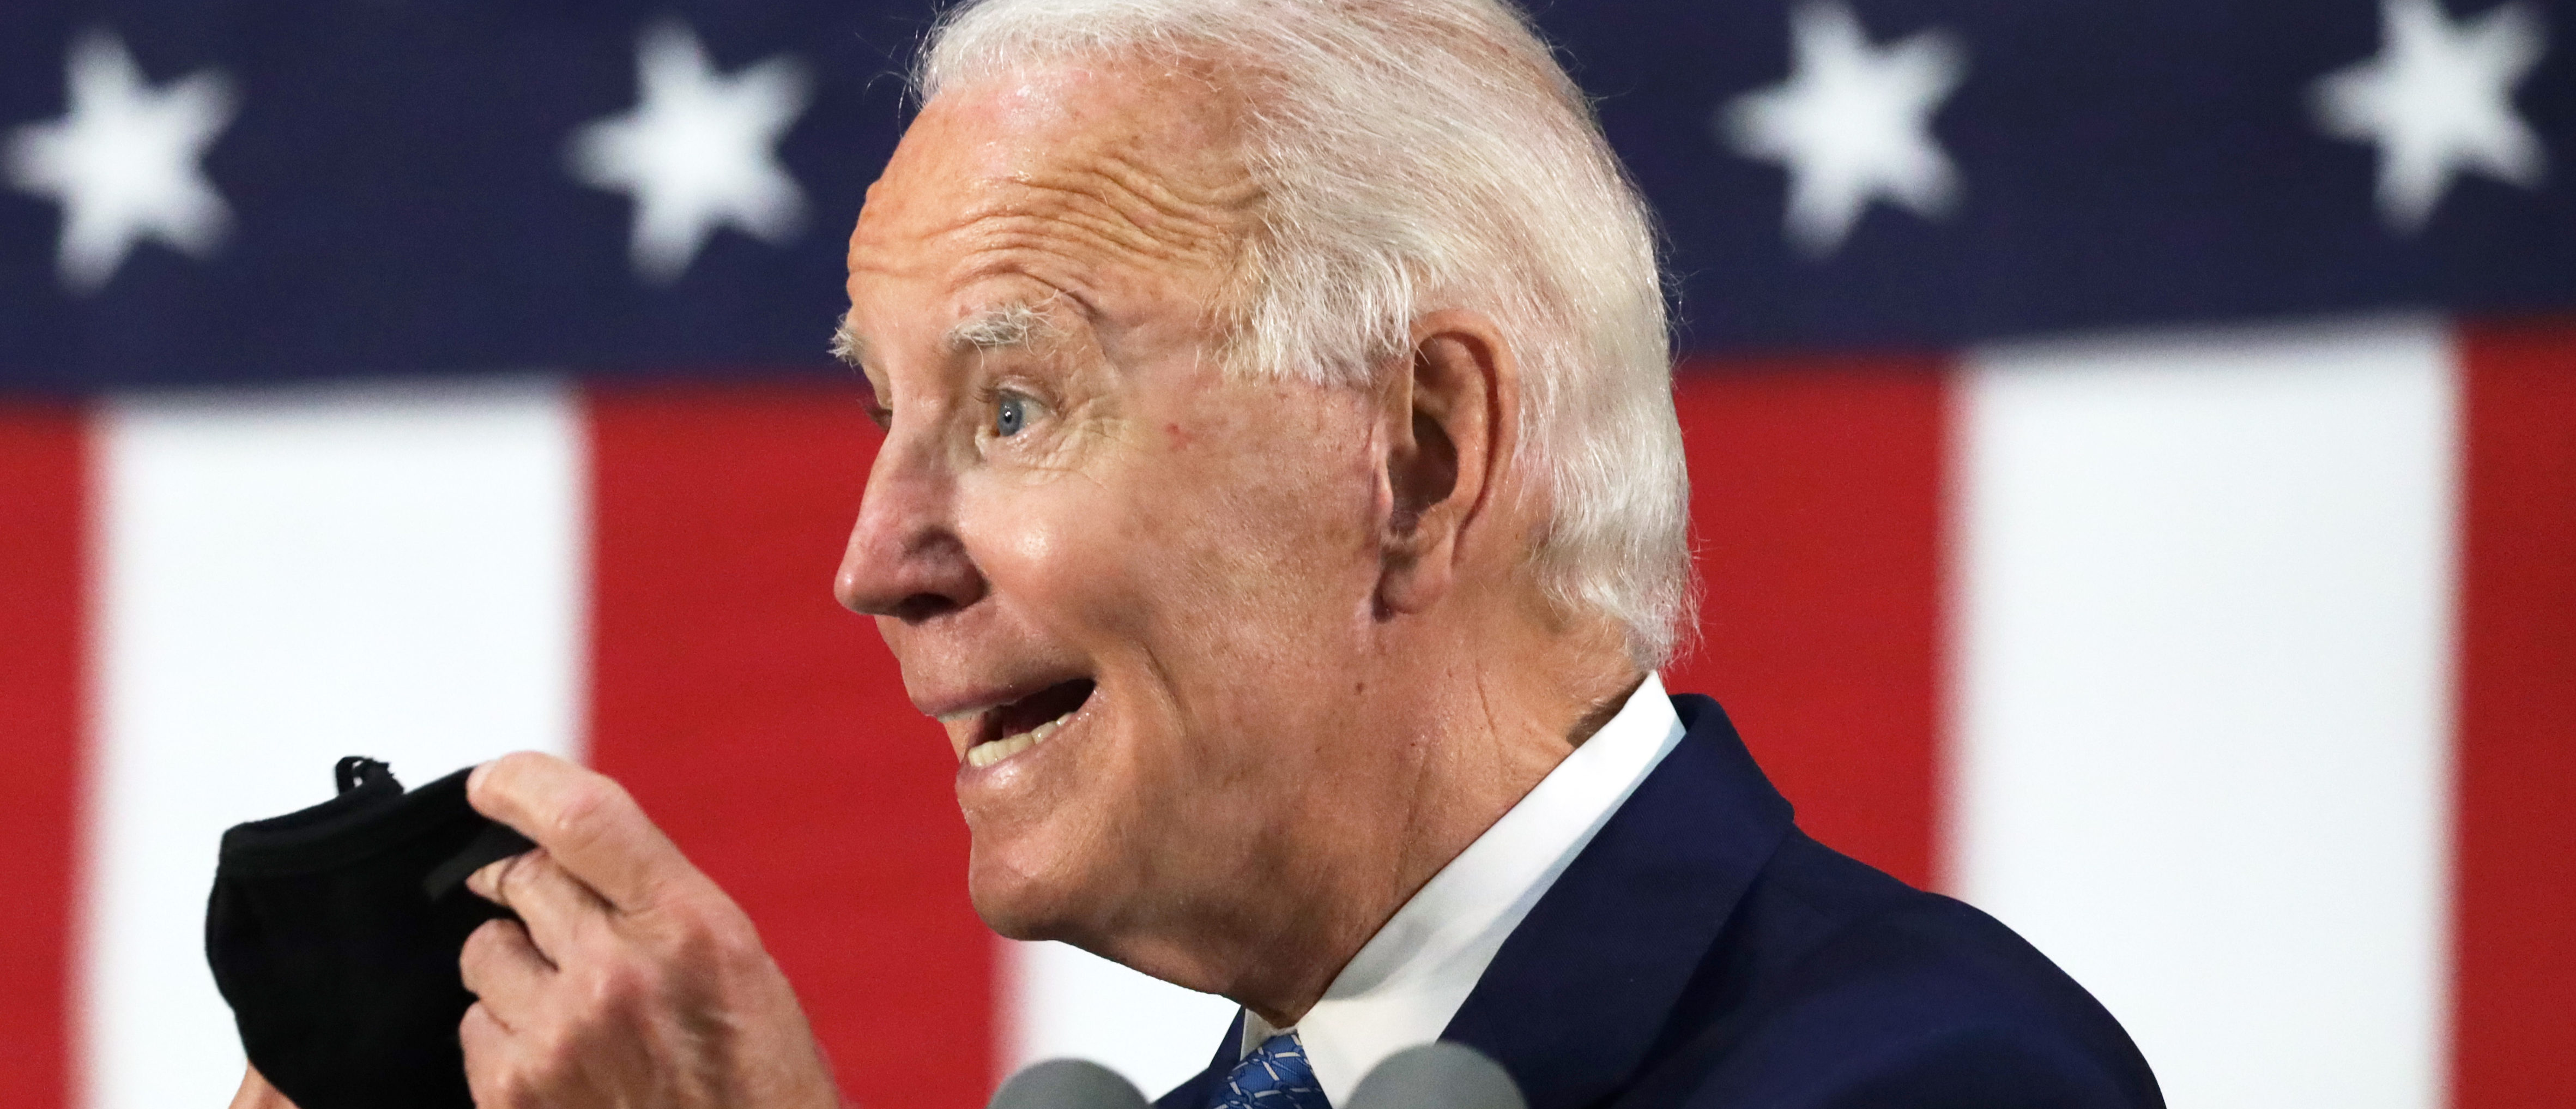 Democratic presidential candidate, former Vice President Joe Biden holds up a mask as he speaks during a campaign event June 30, 2020 at Alexis I. Dupont High School in Wilmington, Delaware. Biden discussed the Trump Administration's handling of the COVID-19 pandemic. Alex Wong/Getty Images